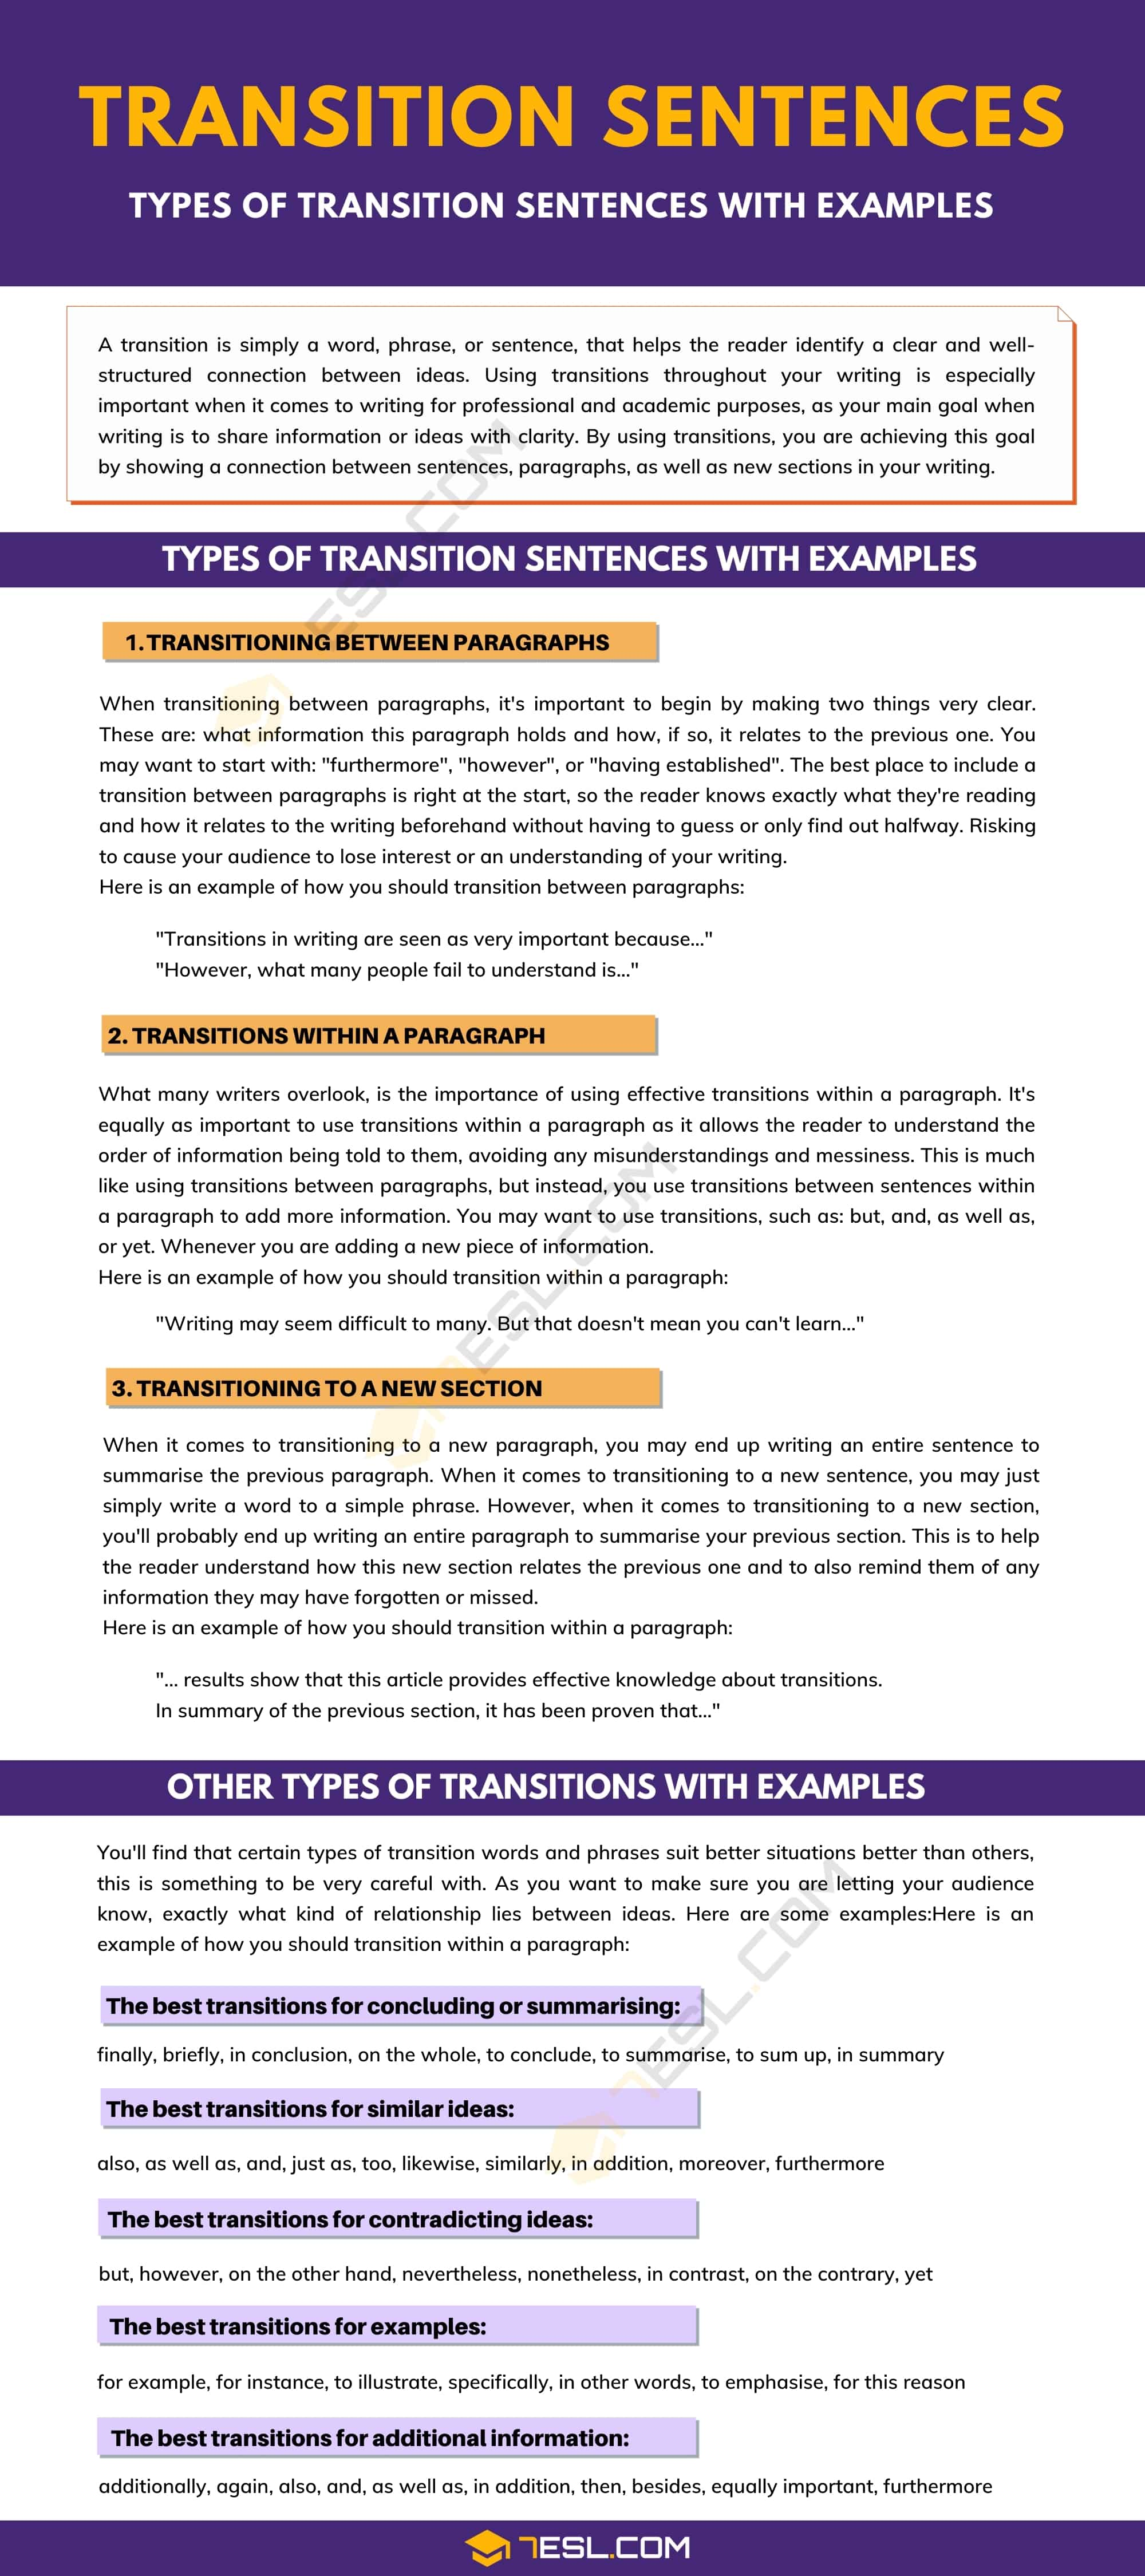 Transition Sentences | Types and Useful Examples for Clear Writing